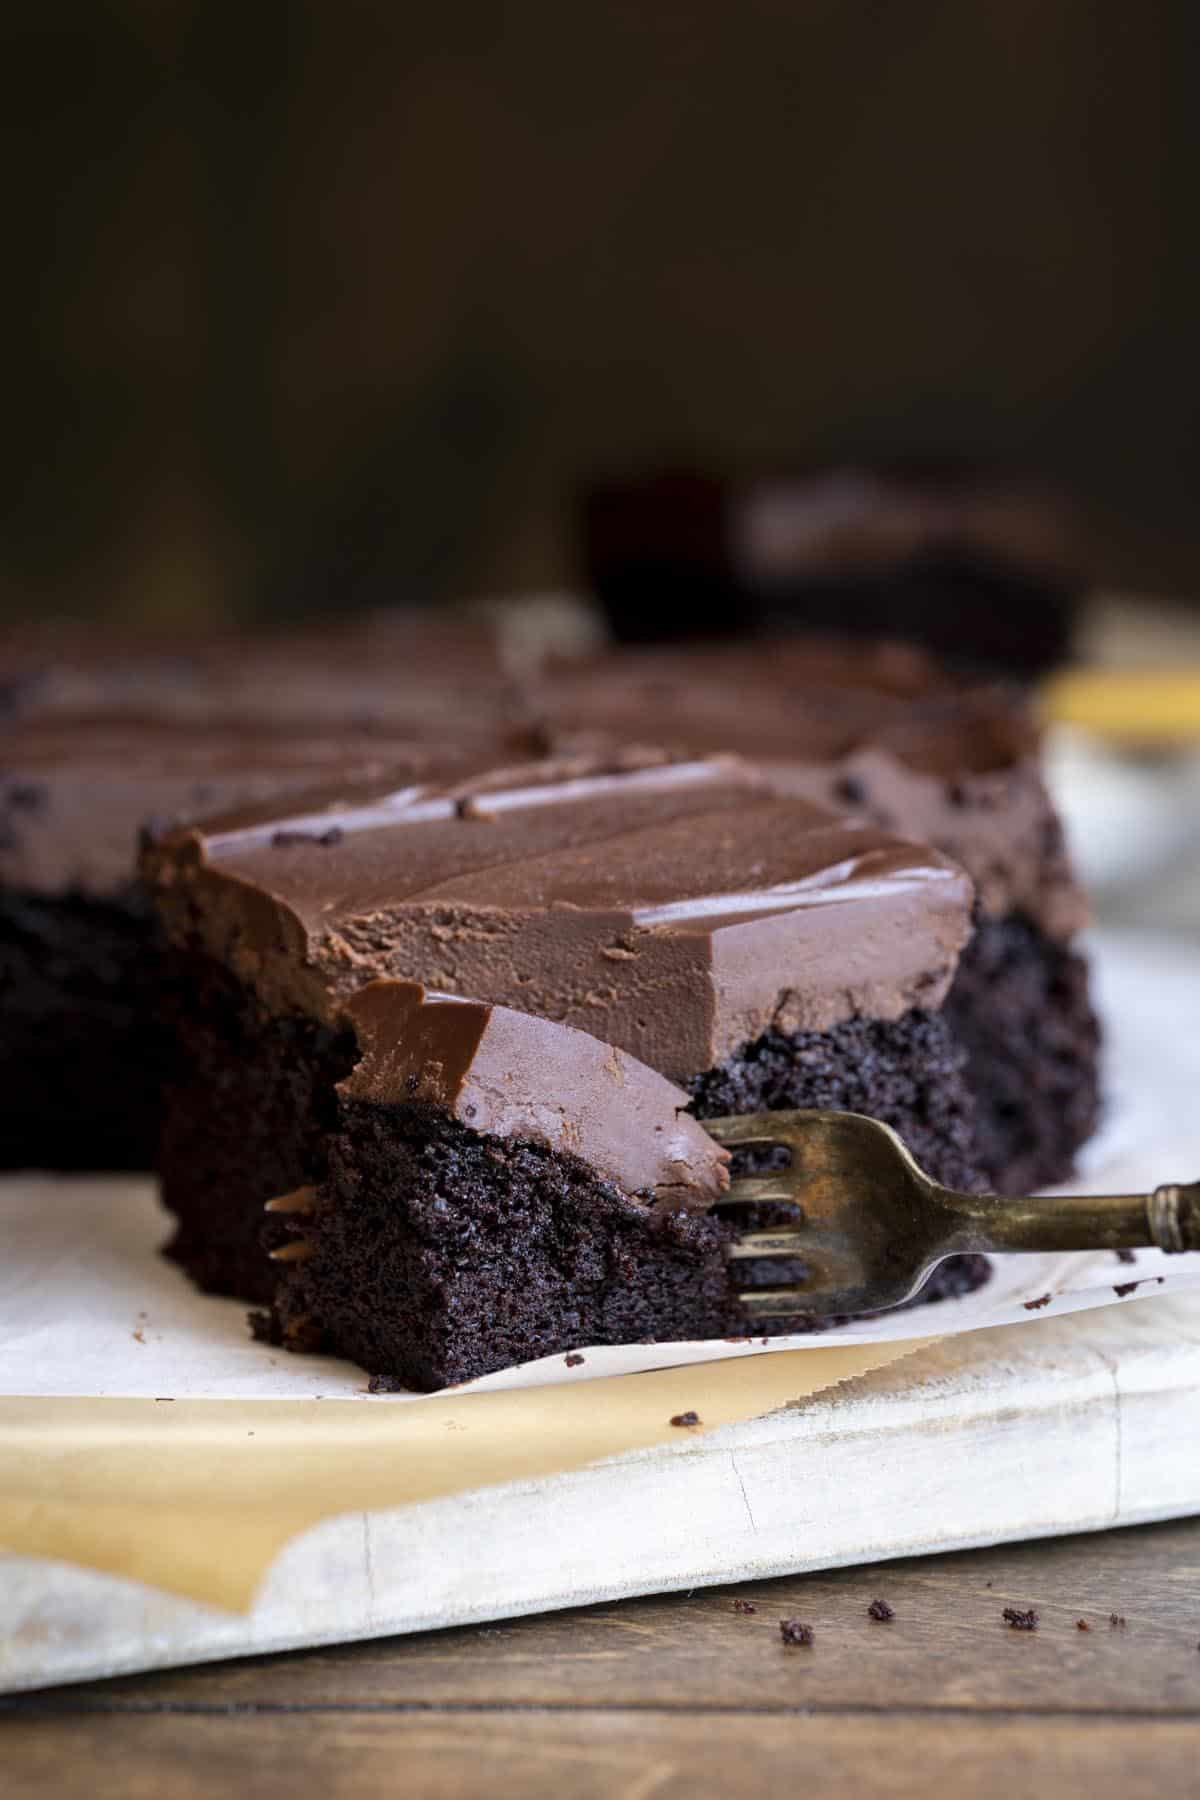 A fork is cutting into a slice of chocolate olive oil cake.